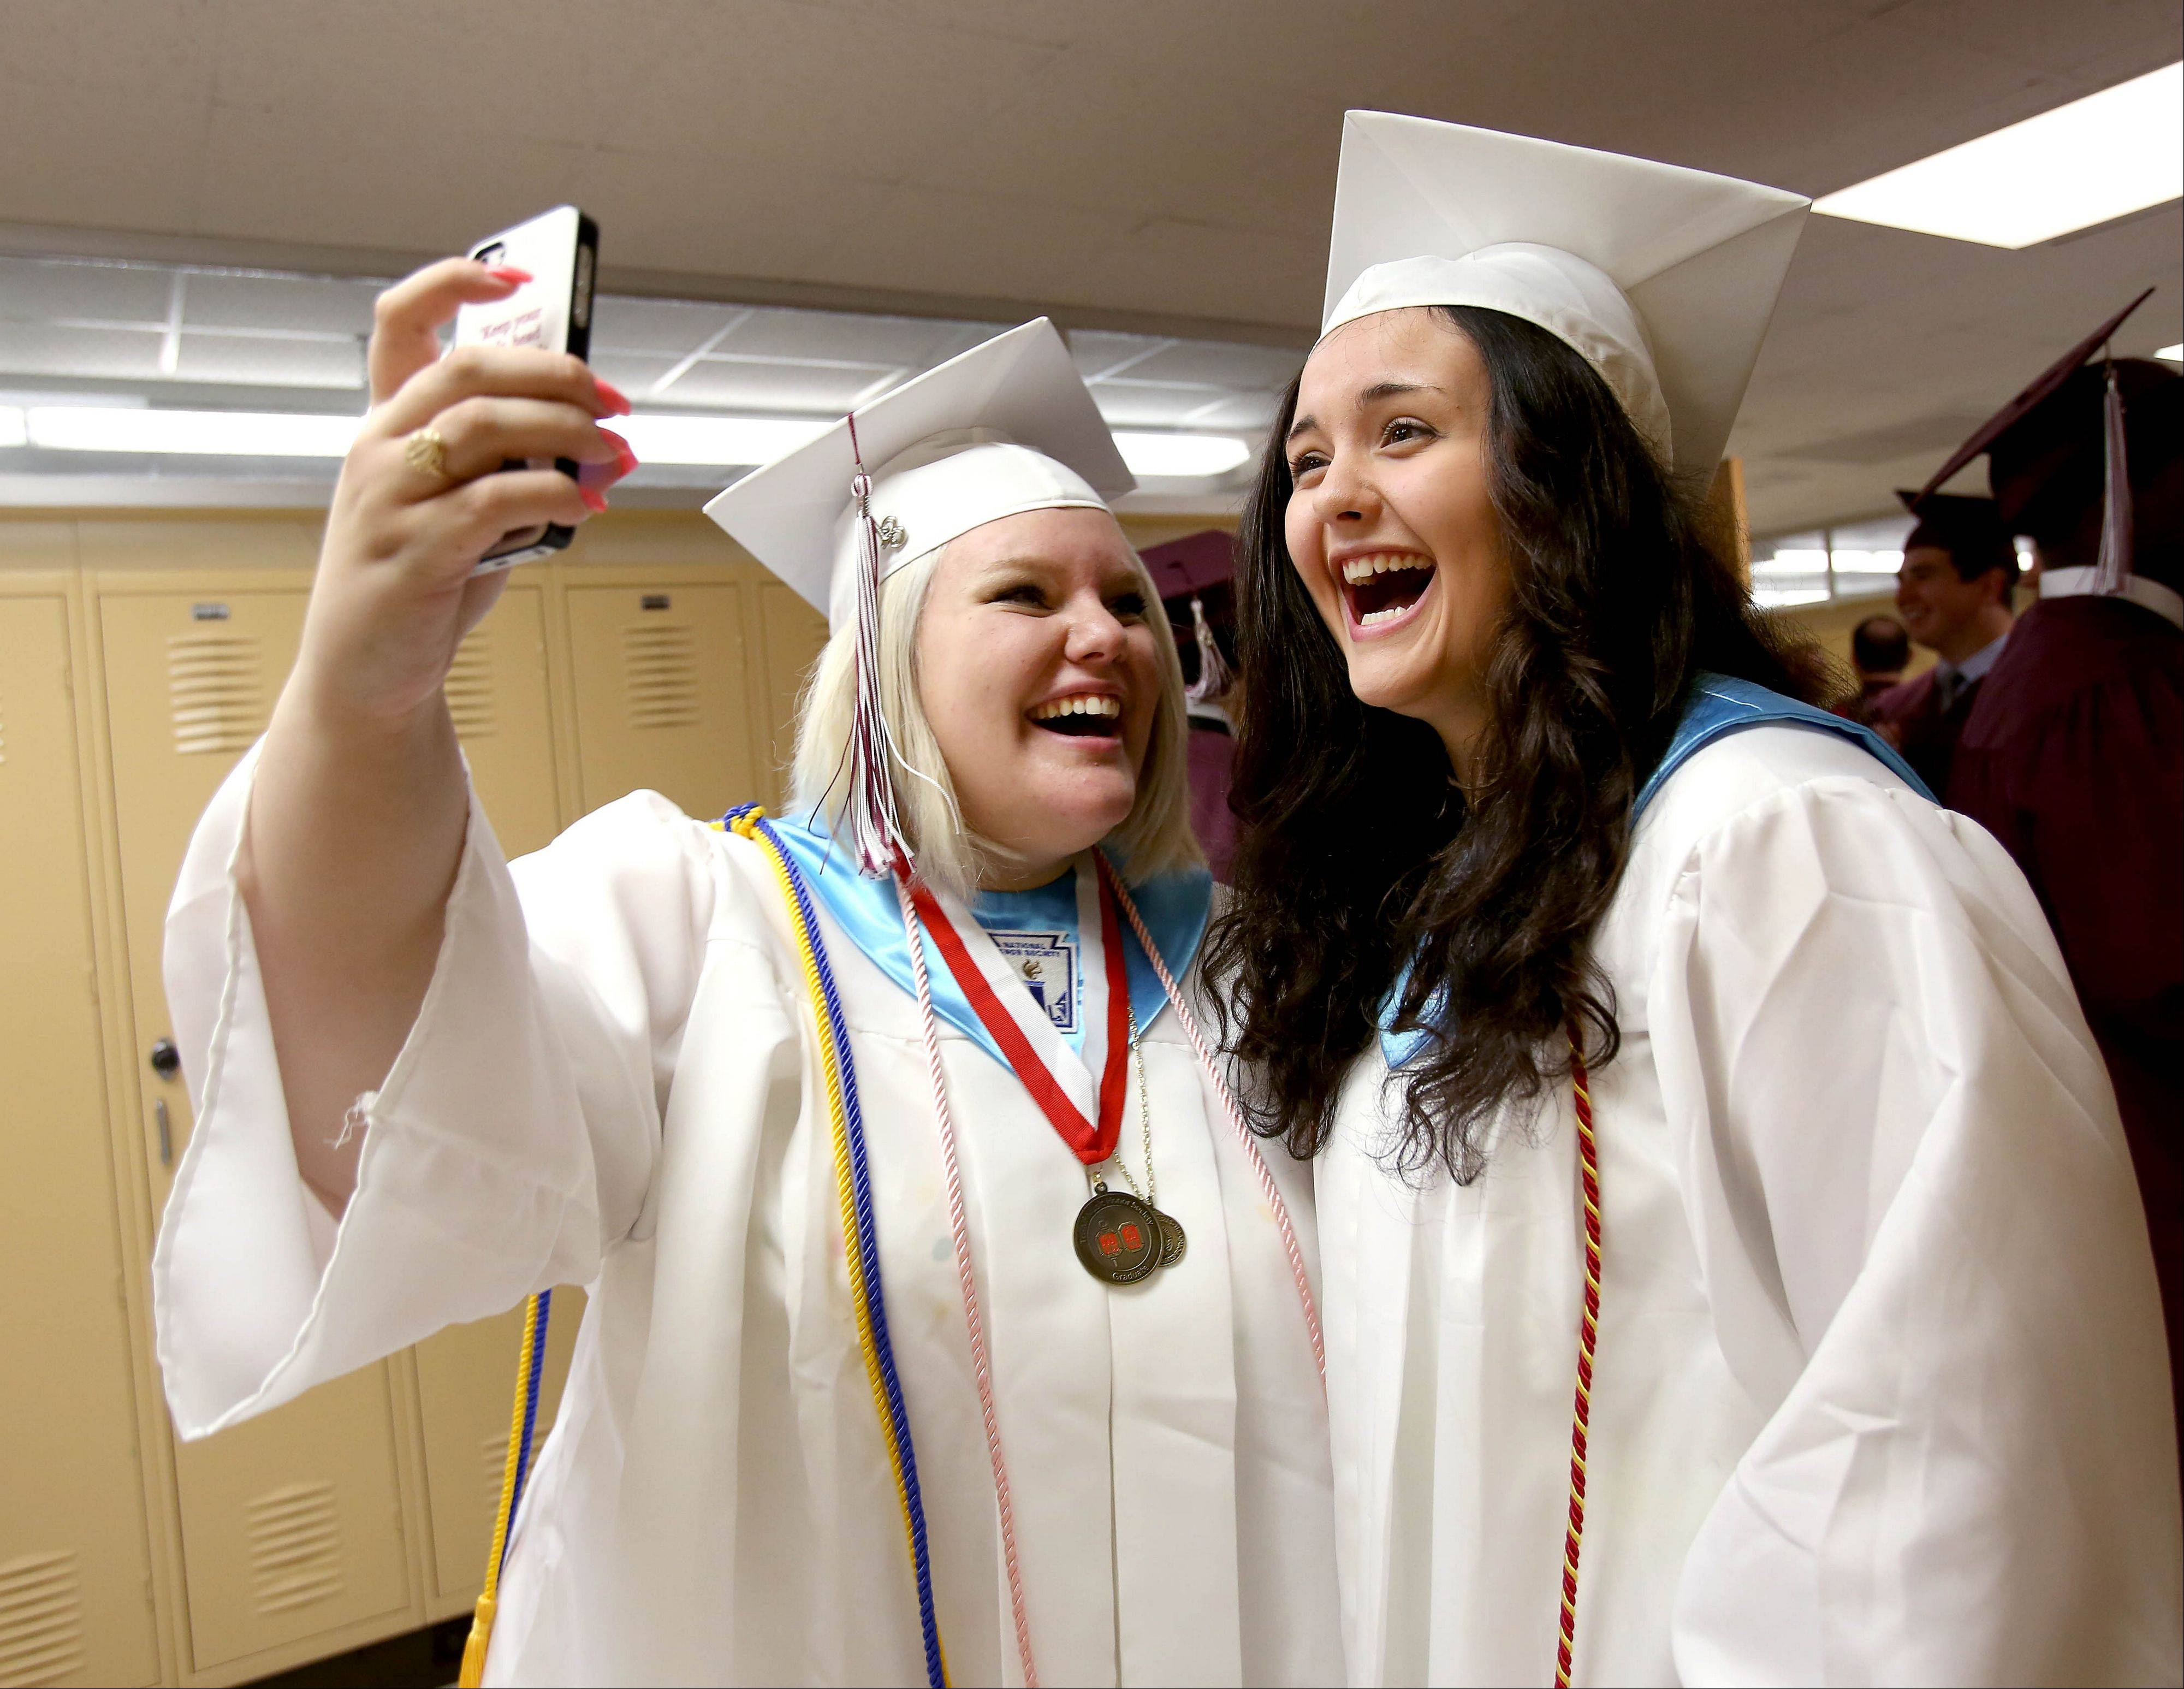 Emily Boldt, left and Kyle Hodyl, right, gets an iPhone photo before the Montini Catholic High School graduation ceremony on Sunday in Lombard. To see more photos and order reprints, visit www.dailyherald.com/galleries/news/graduations/